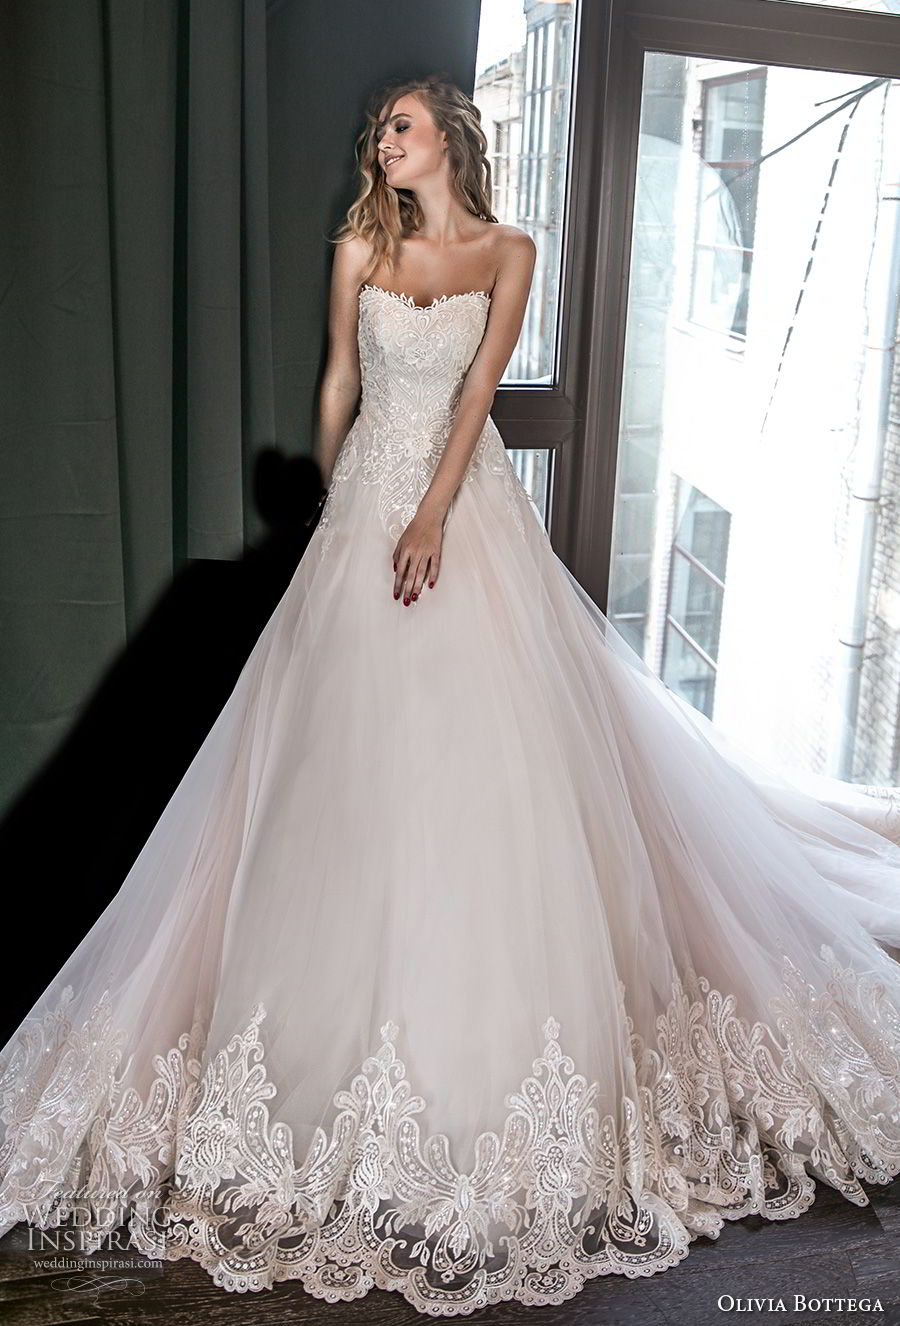 olivia bottega 2018 bridal strapless sweetheart neckline heavily embellished bodice romantic blush a line wedding dress chapel train (8) mv